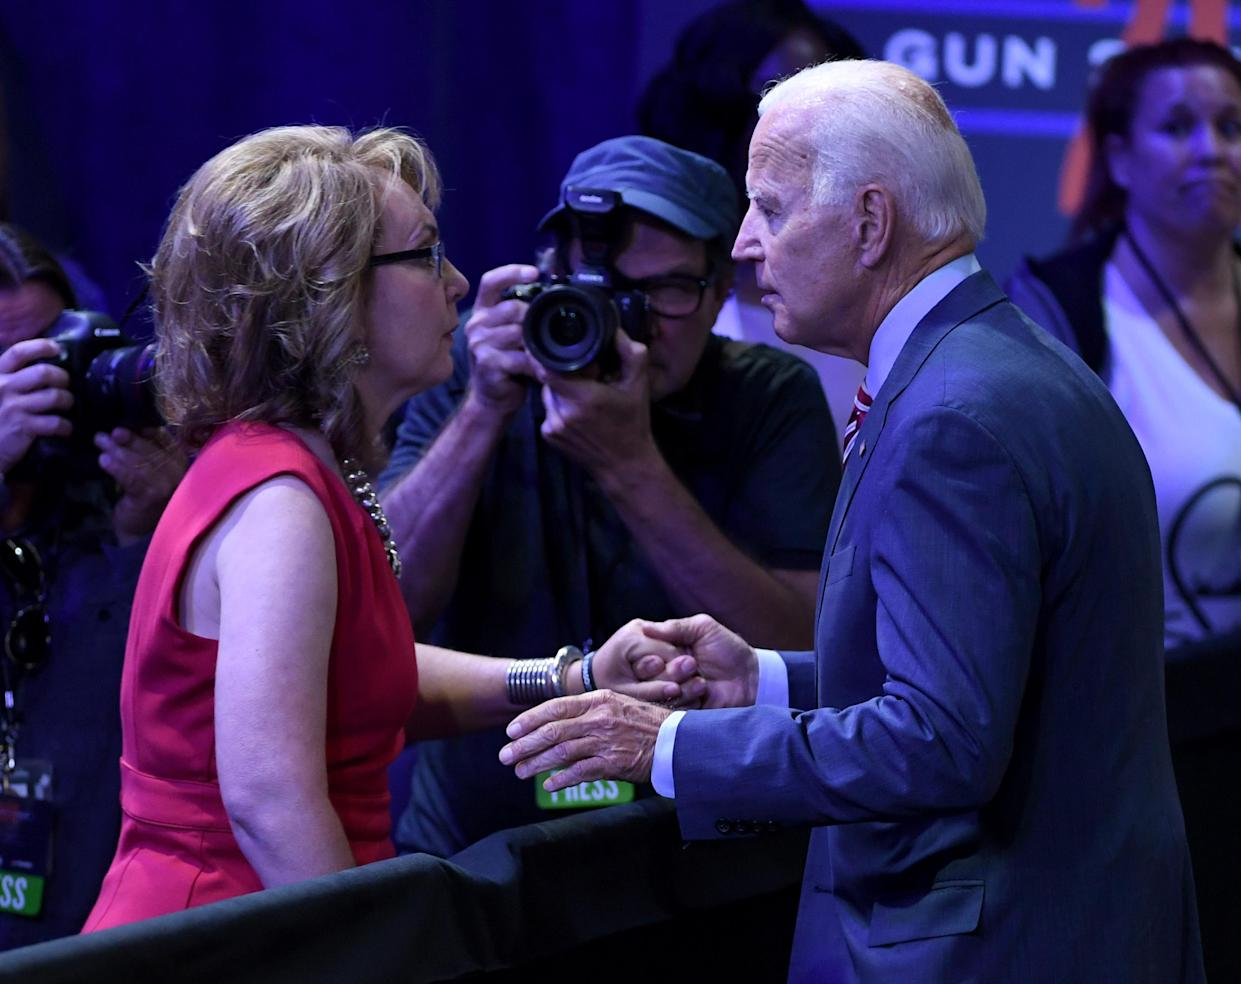 Former U.S. Rep. Gabrielle Giffords (L) greets Democratic presidential candidate, former U.S. Vice President Joe Biden after he spoke at the 2020 Gun Safety Forum hosted by gun control activist groups Giffords and March for Our Lives at Enclave on October 2, 2019 in Las Vegas, Nevada. (Ethan Miller/Getty Images)